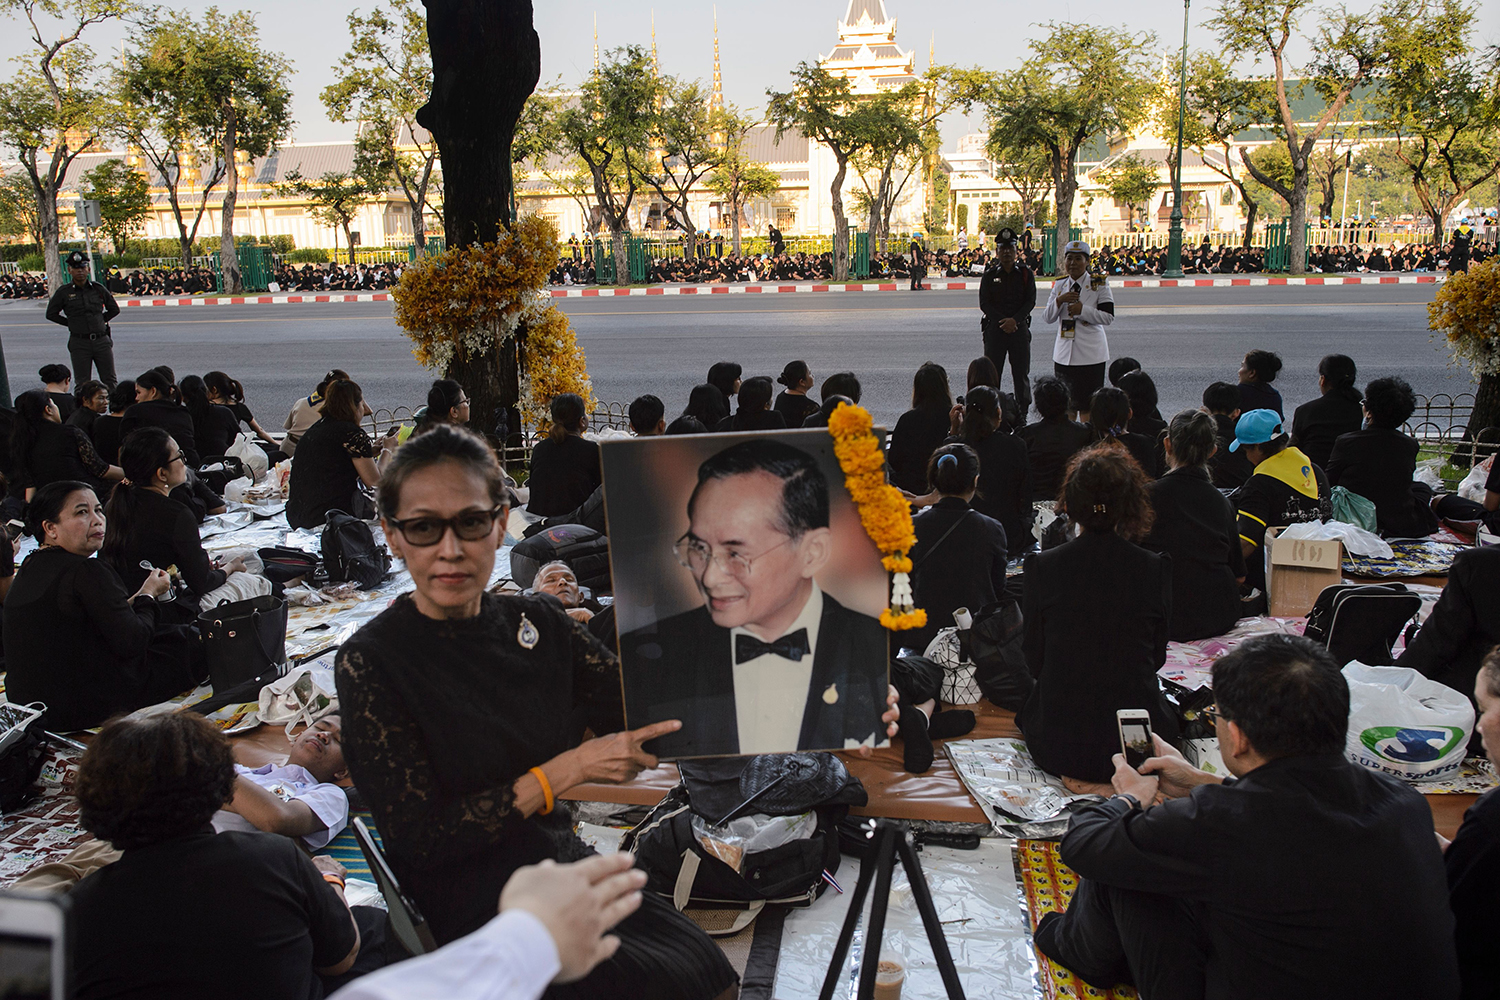 TOPSHOT - A mourner holds up an image of the late Thai king Bhumibol Adulyadej as she waits with others for his funeral procession tocontinue in Bangkok on October 27, 2017. Thailand's new king picked bits of bone and ash from his father's remains on October 27 to be enshrined as royal relics, after the cremation of the late King Bhumibol Adulyadej capped an extravagant funeral that brought the nation to a standstill. / AFP PHOTO / YE AUNG THU        (Photo credit should read YE AUNG THU/AFP/Getty Images)